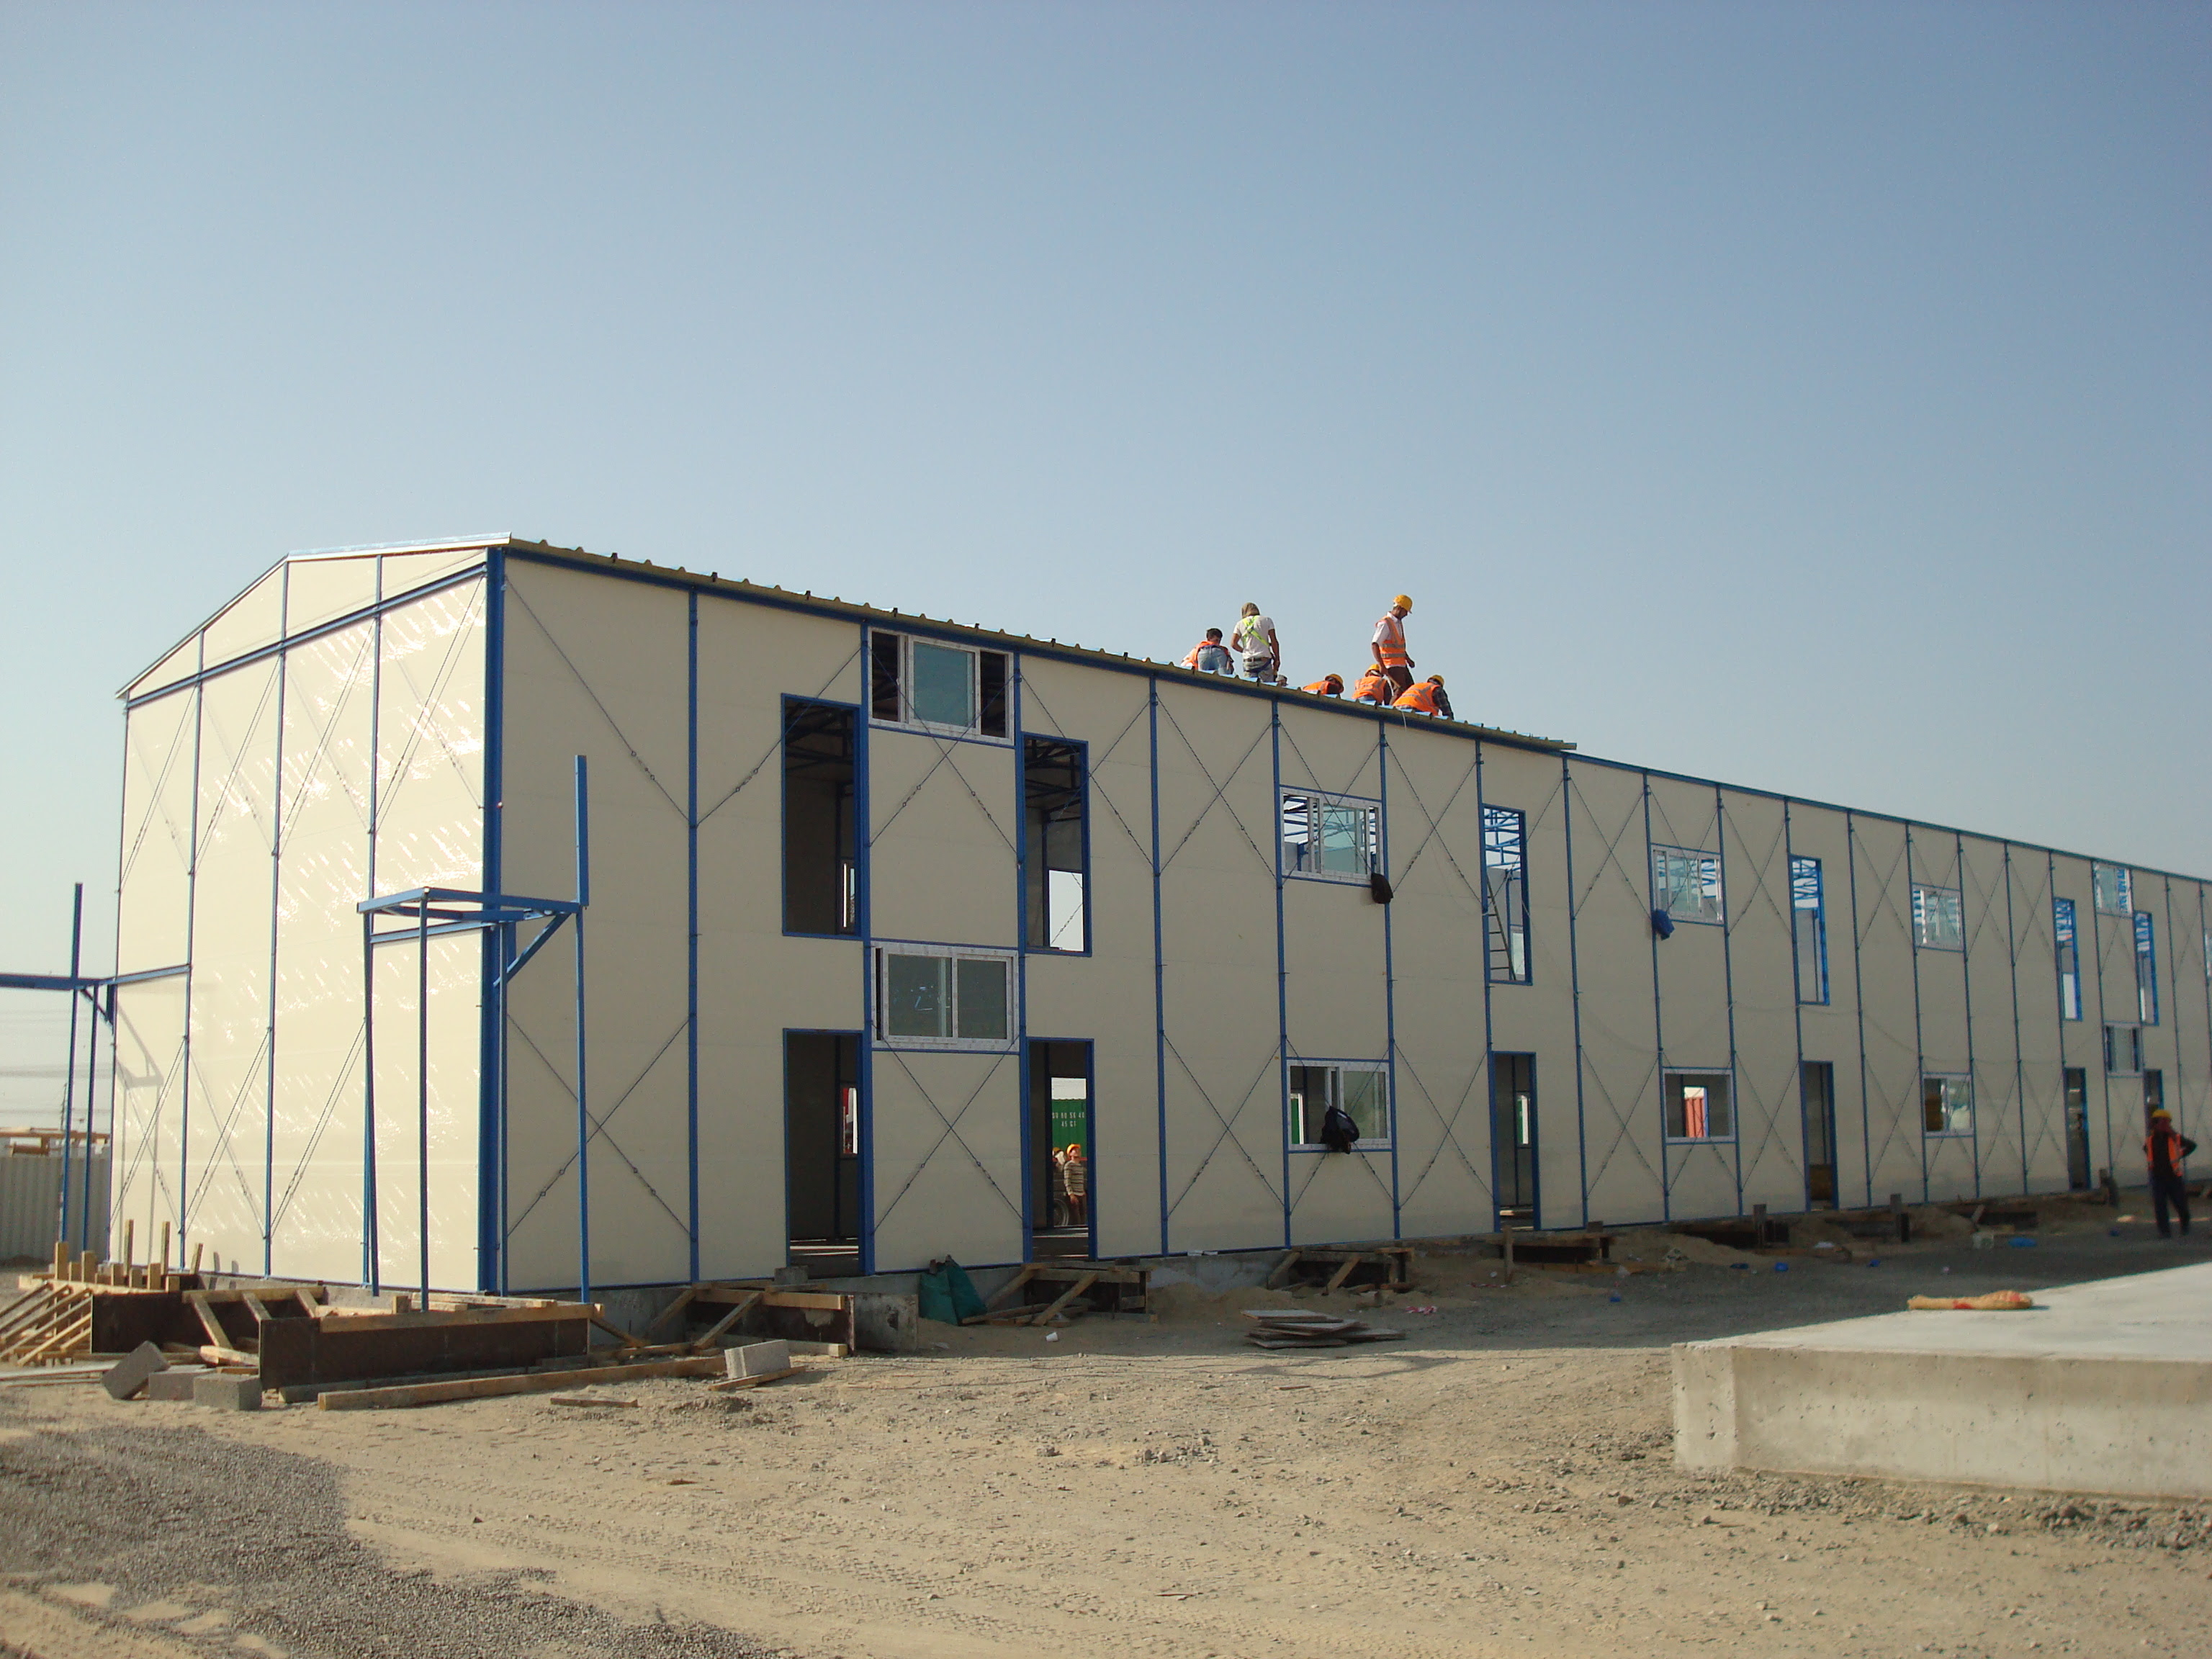 All brand new prefab house, labor camp, the workshop on sales with low cost